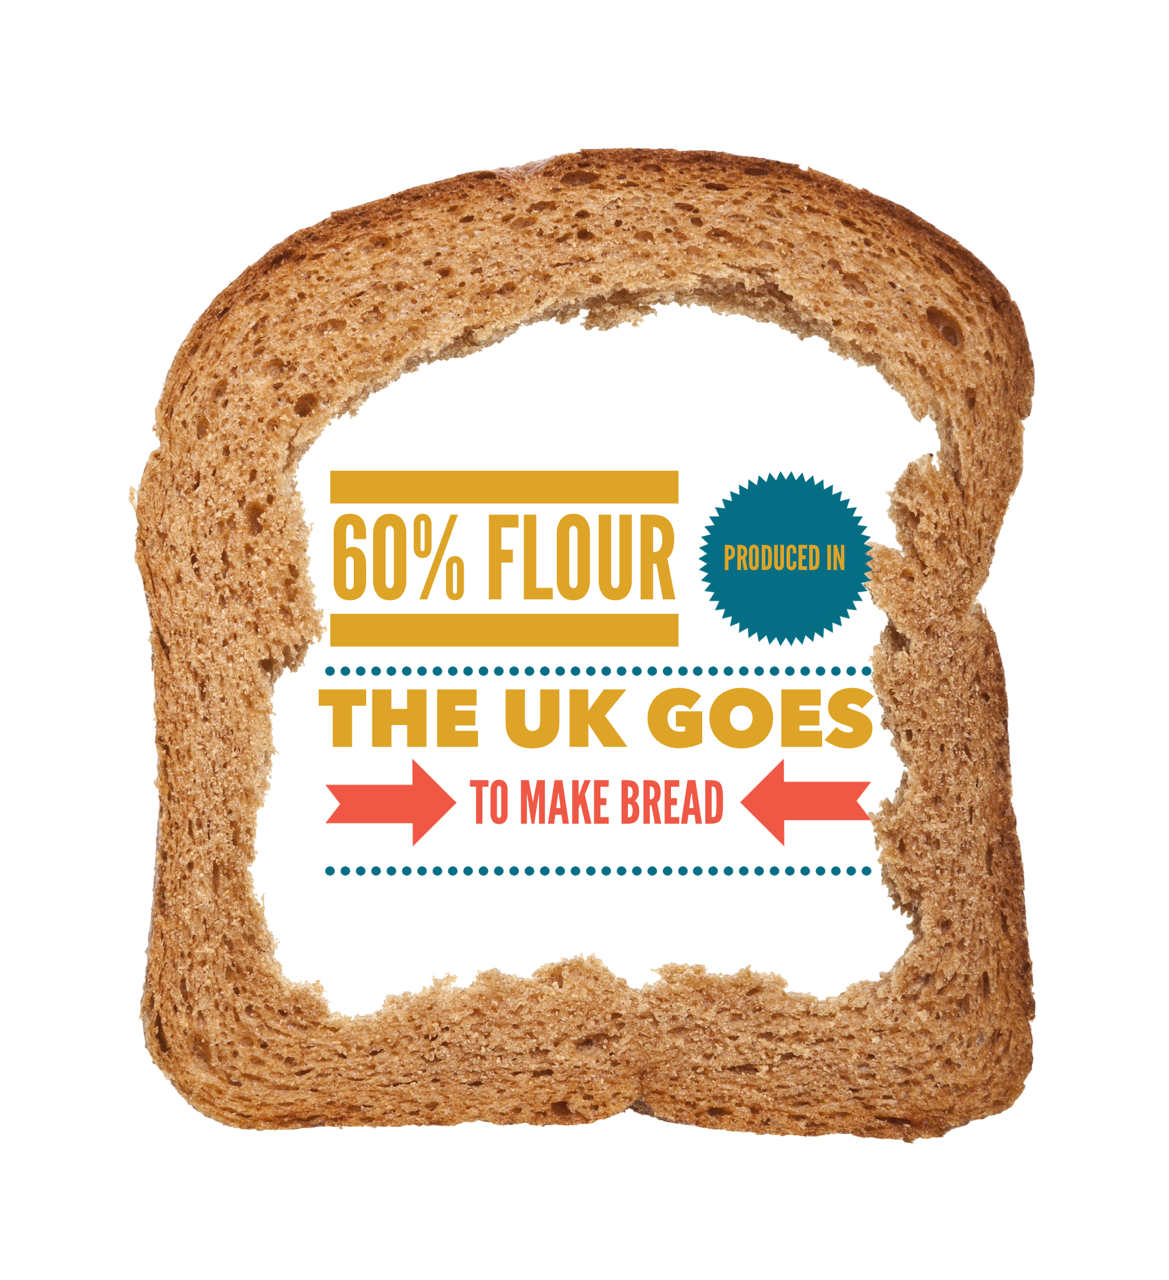 Top Ten Fab Pictures: Top 10 Facts About Bread